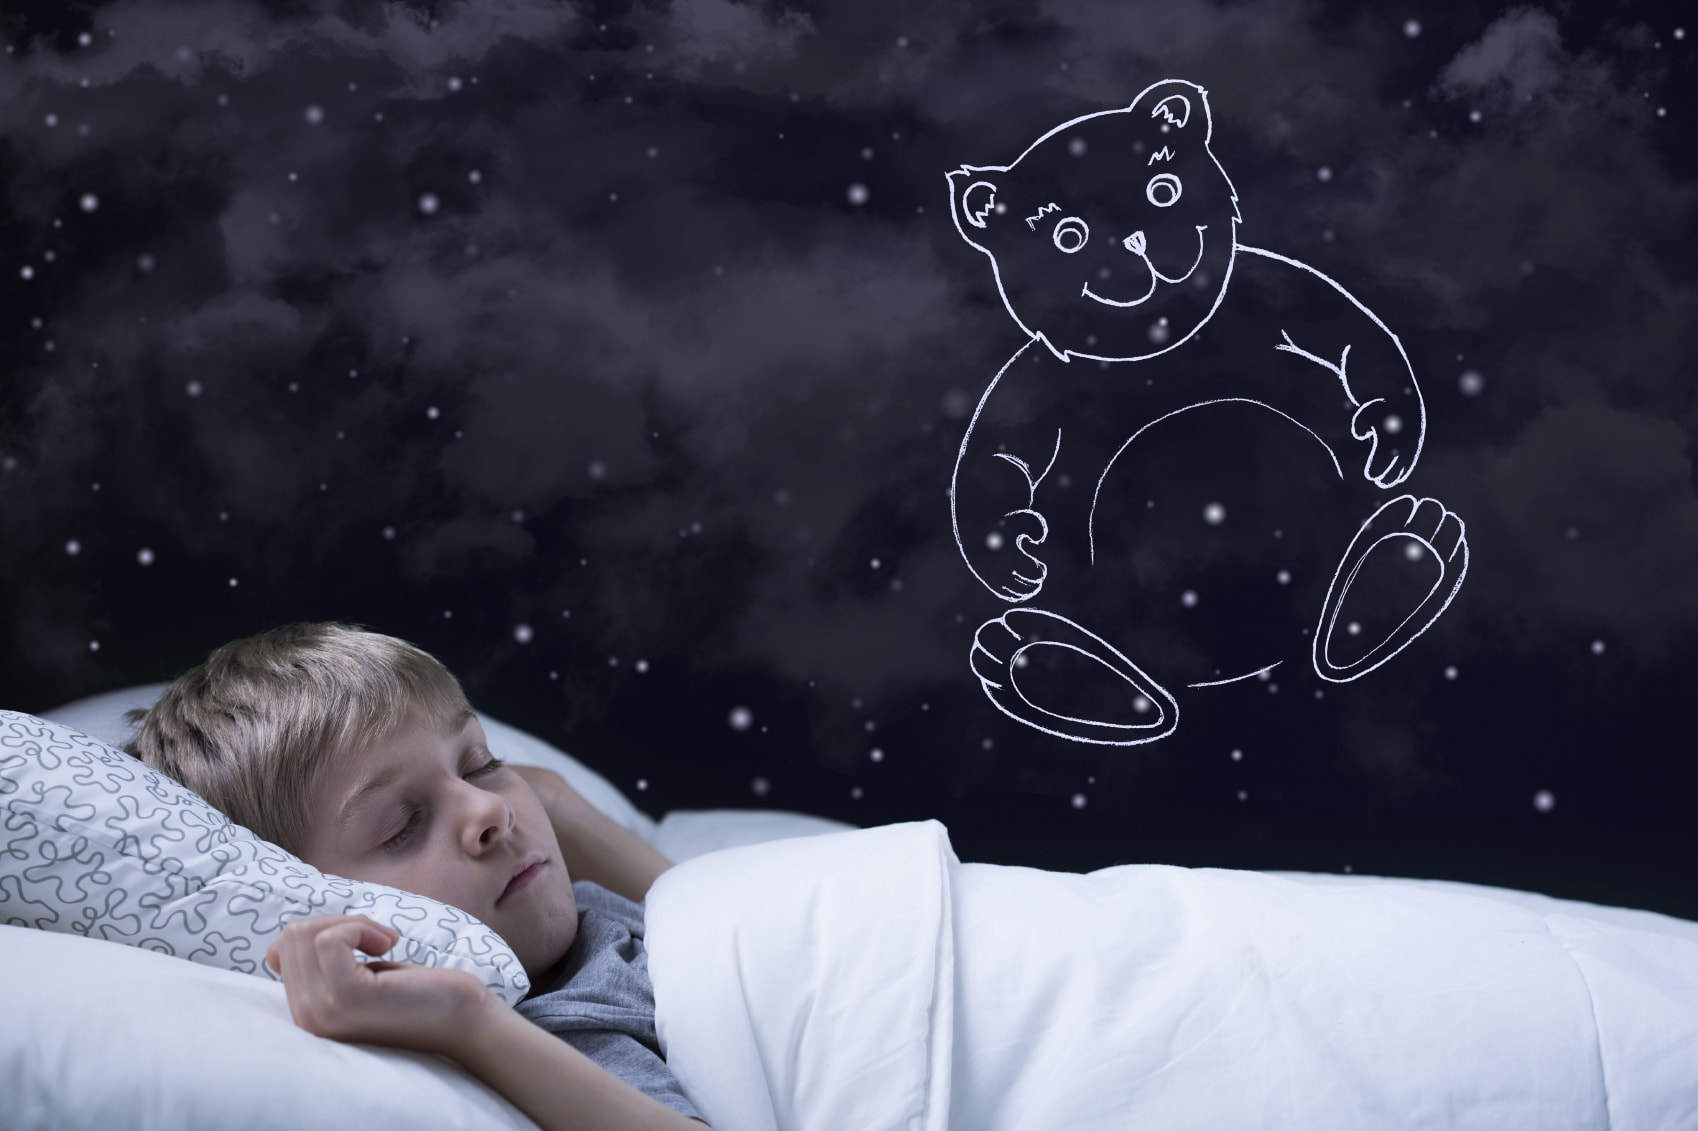 10 tips to help your child sleep